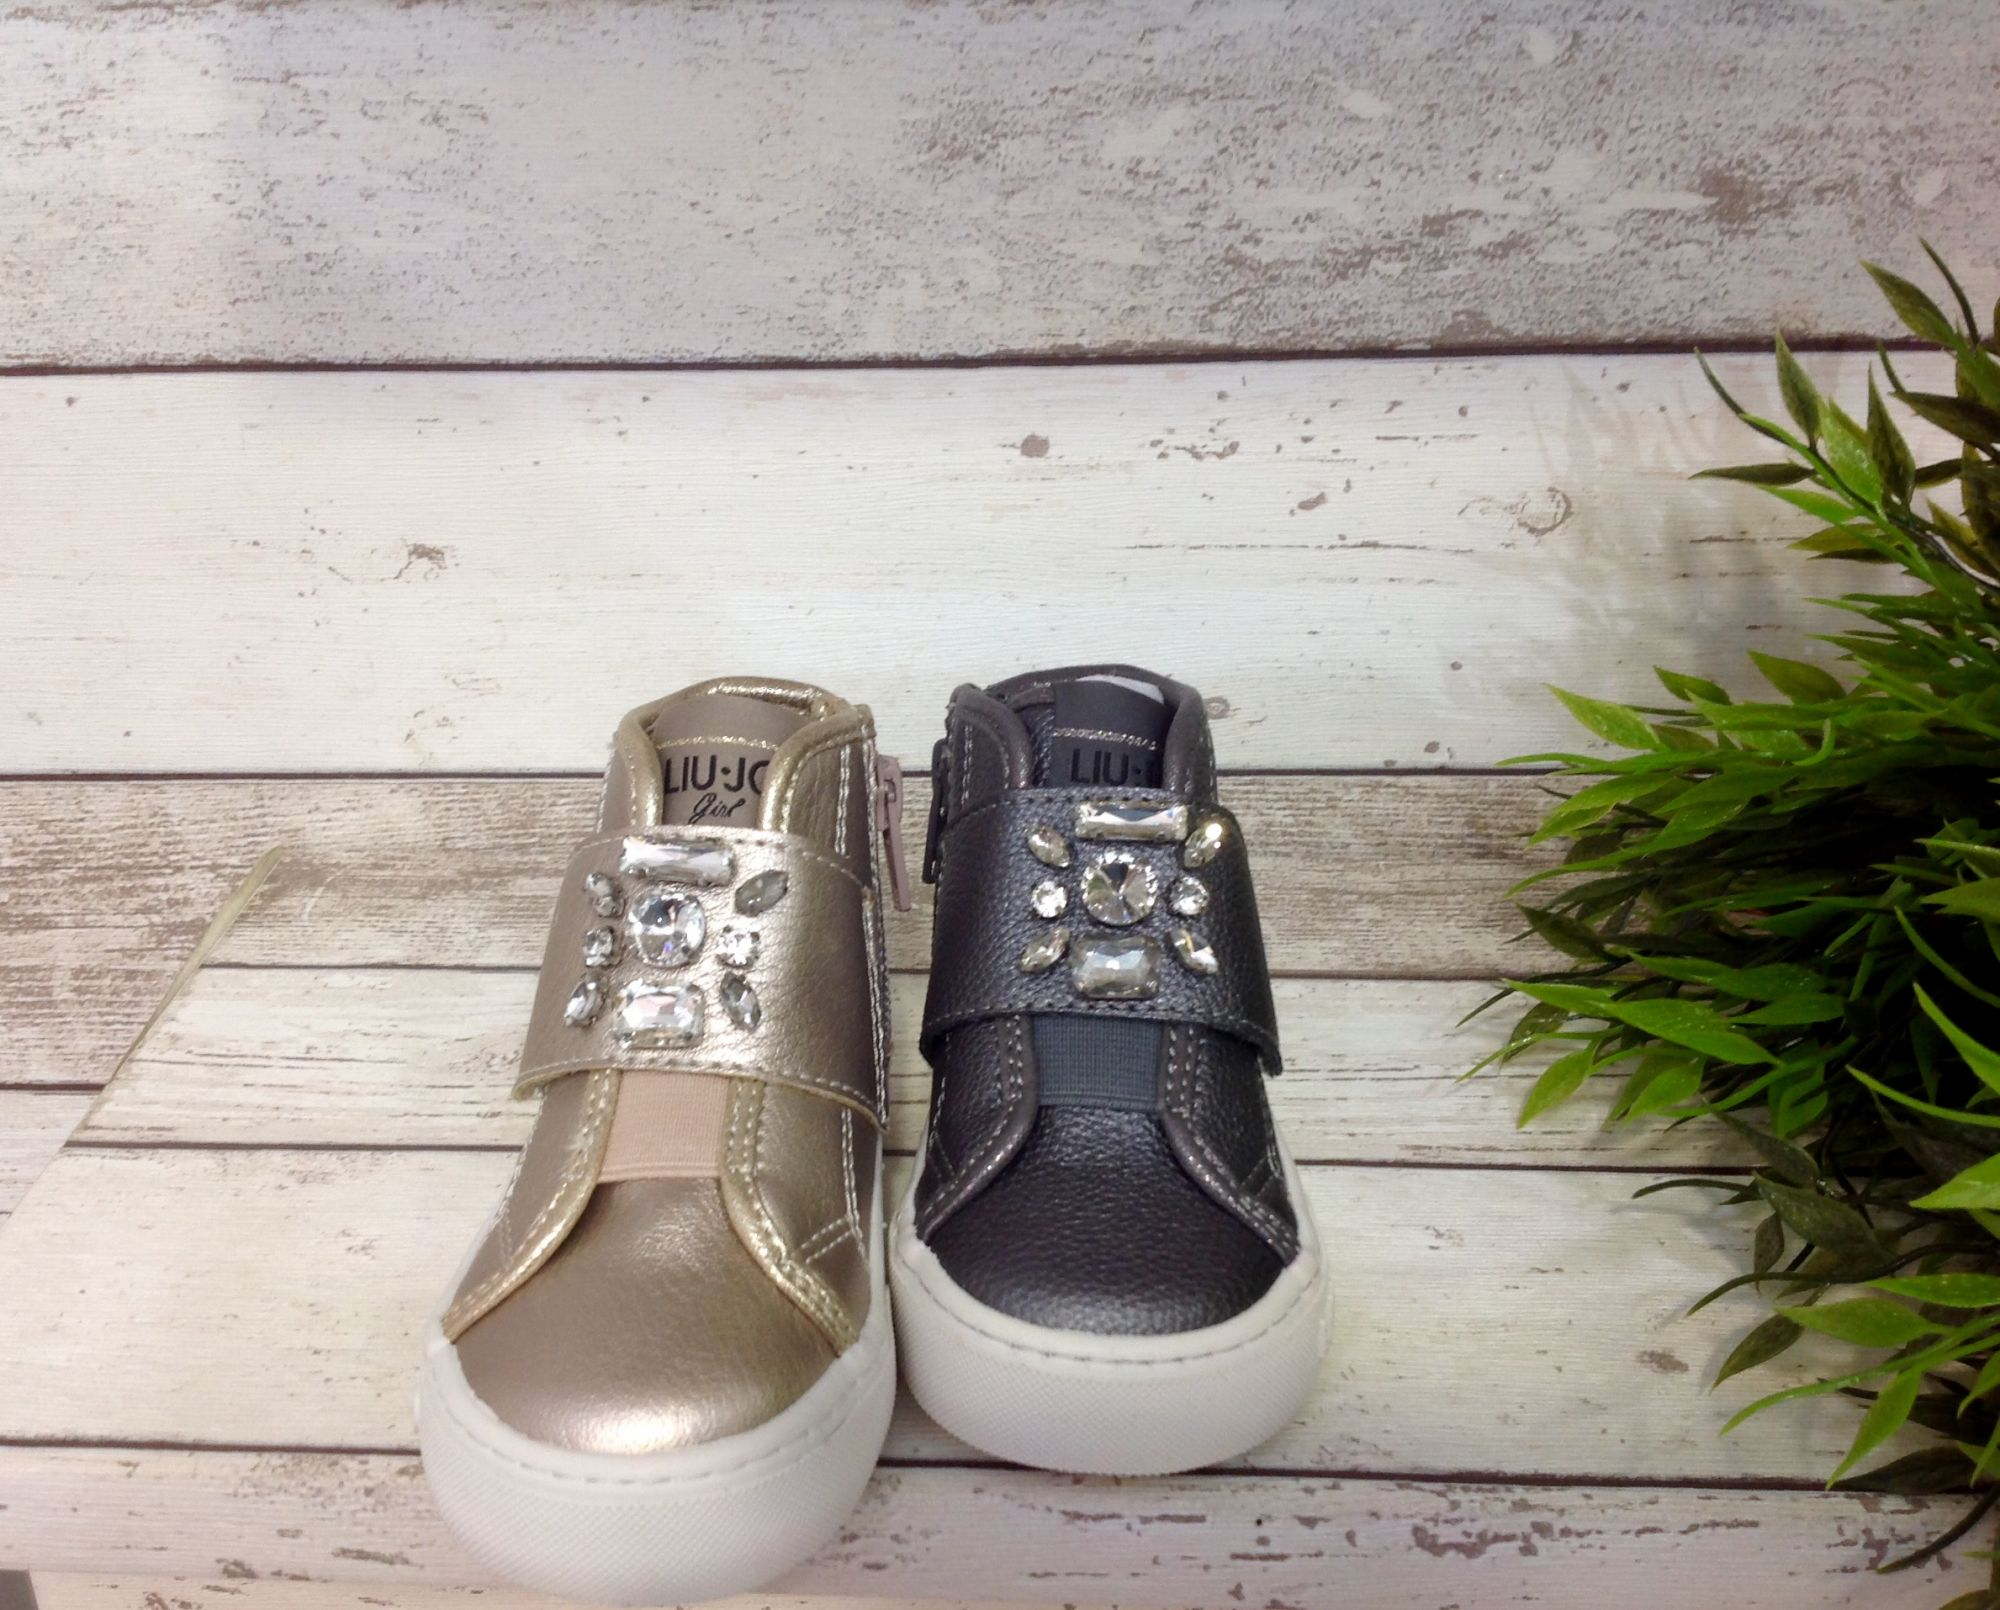 Liu jo calzature kids New Sneakers La Cicogna Lido degli